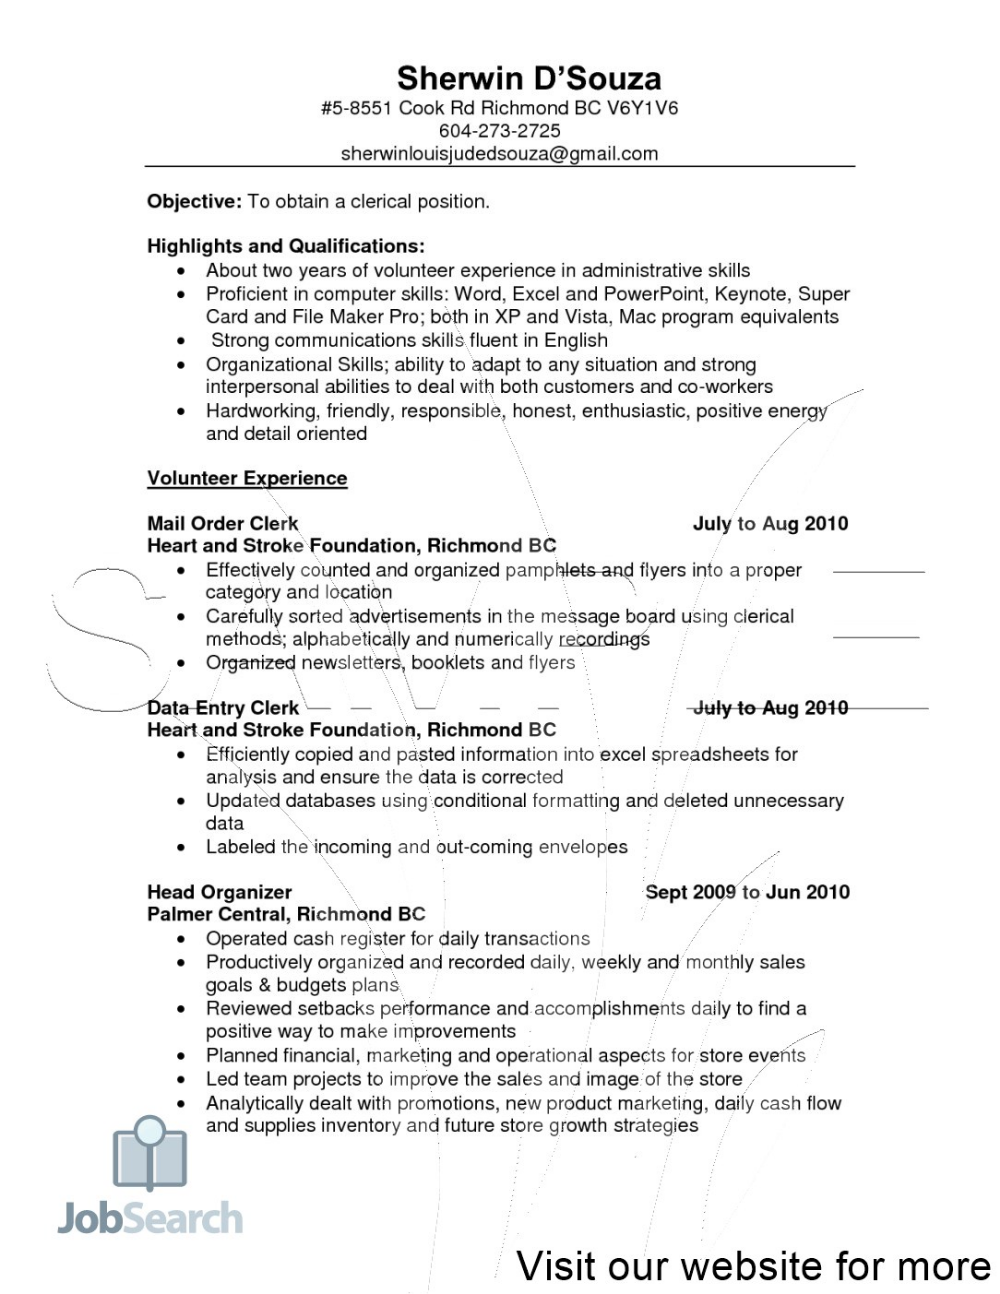 Objective For Resume Clerical Work 2020 Good Objective For Clerical Resume Objective Examples For Cl In 2020 Resume Objective Examples Resume Writing Resume Skills